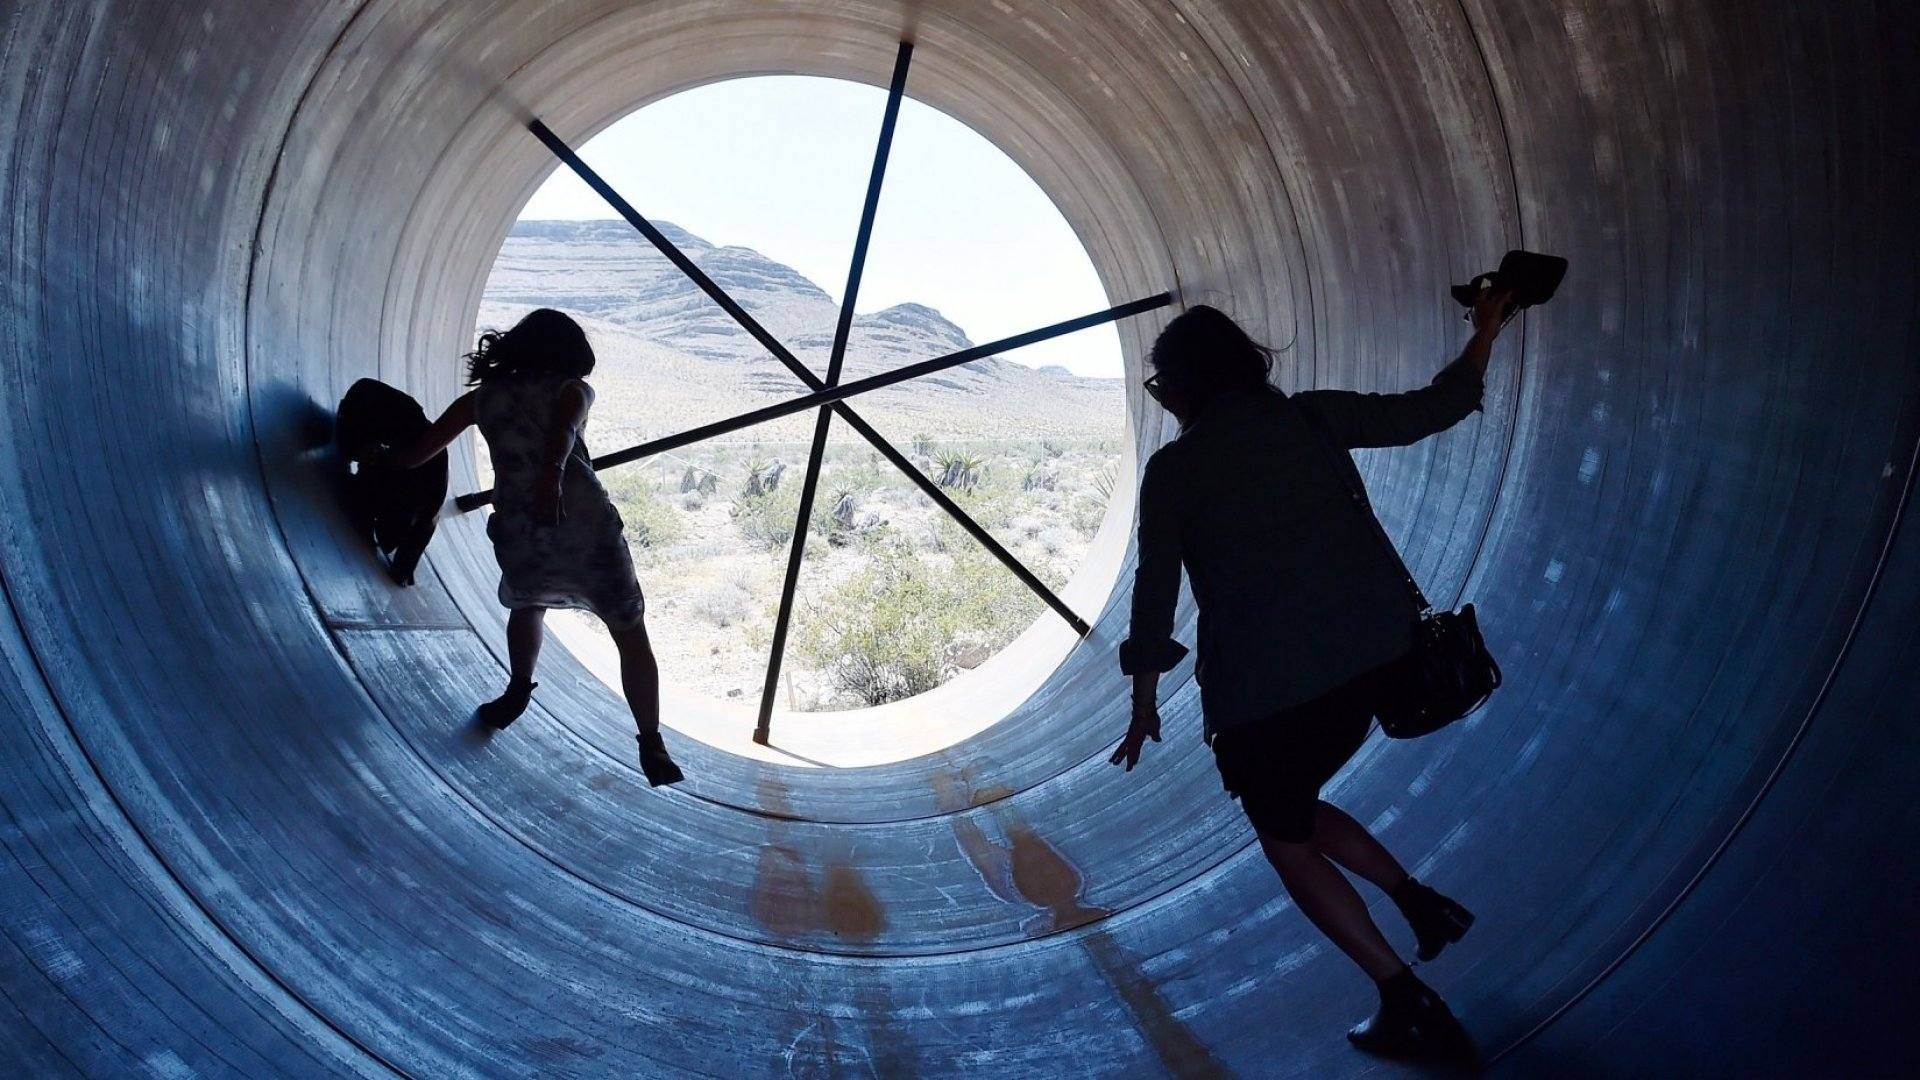 People walk through a Hyperloop tube after the first test of a propulsion system at the Hyperloop One Test and Safety site on May 11, 2016 in North Las Vegas, Nevada.